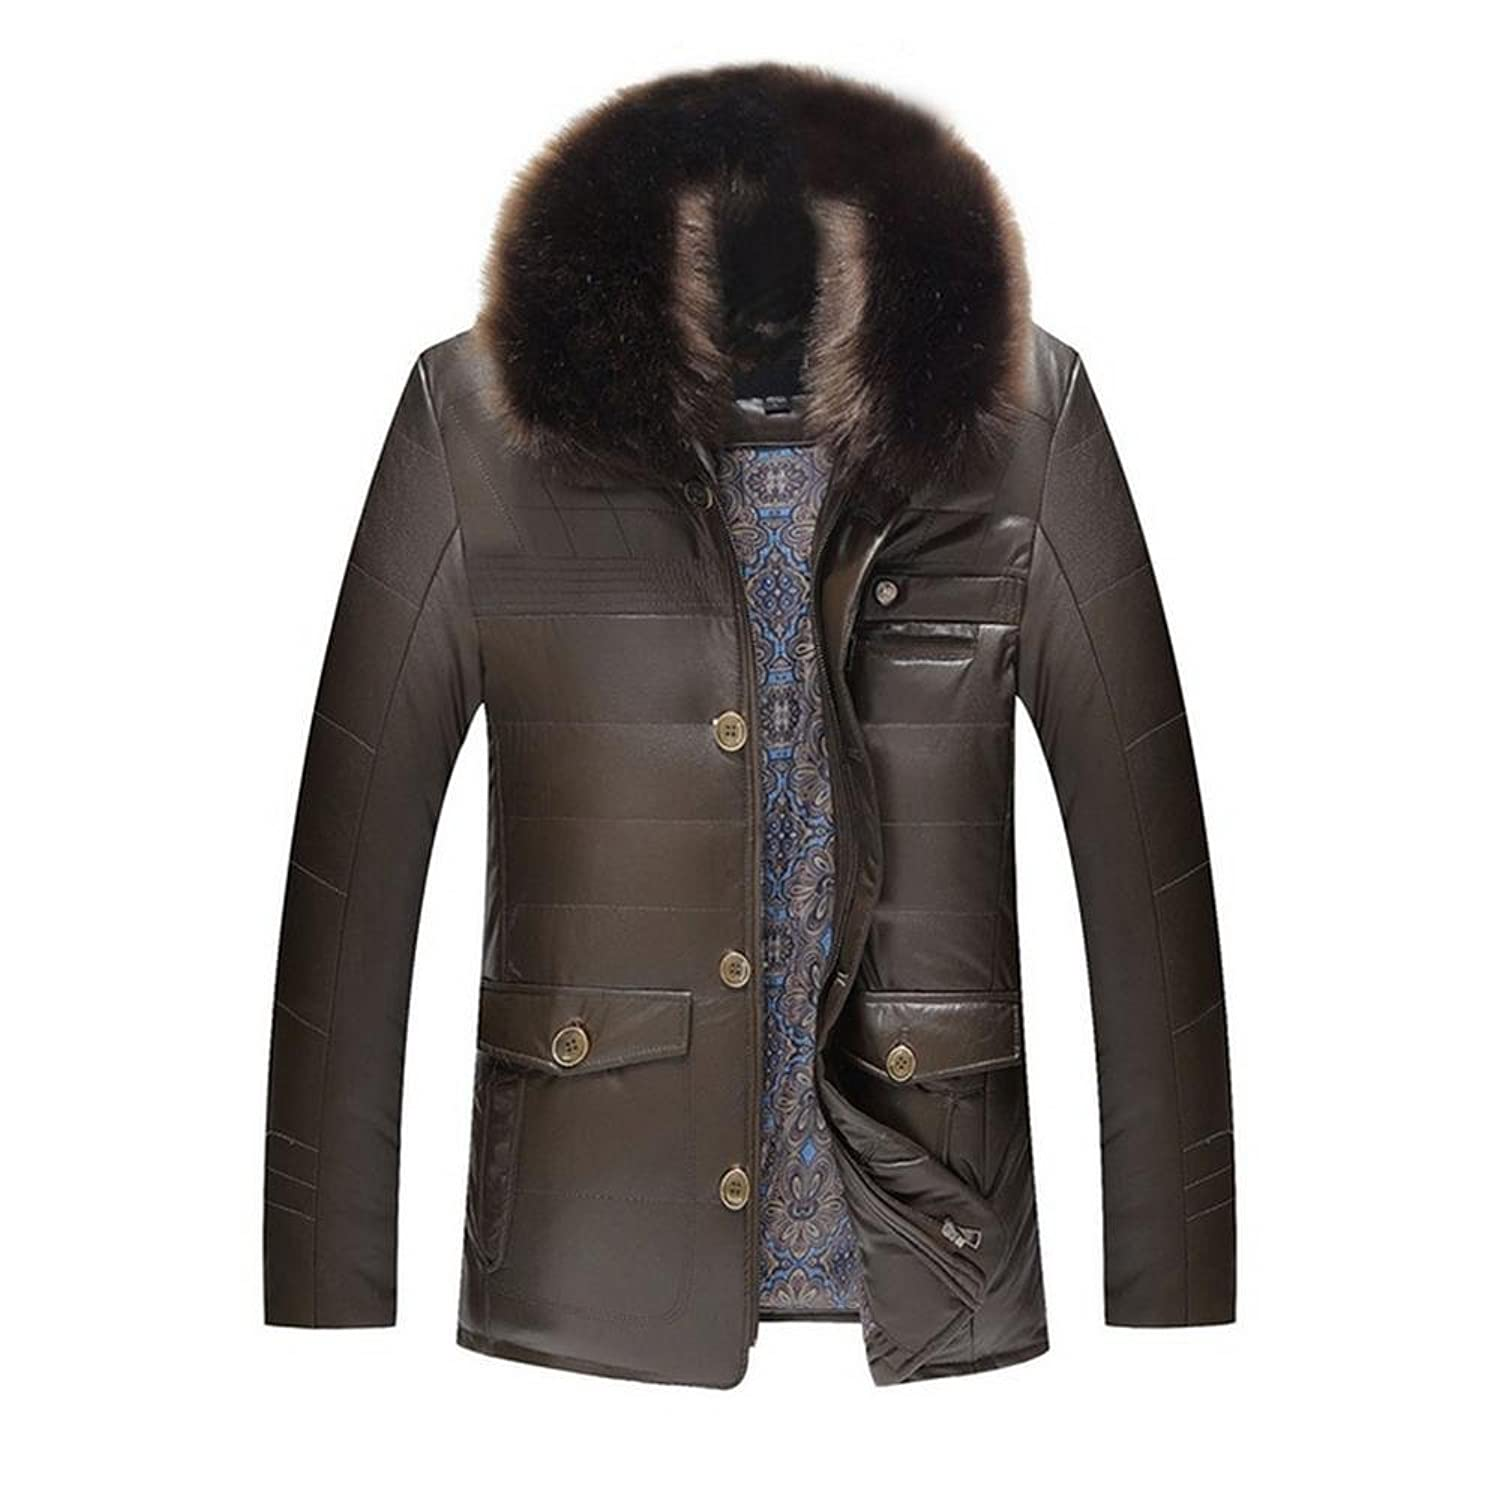 Hzcx Fashion Men's Fur Collar Faux Leather Jackets Father's Winter Warm Outwear